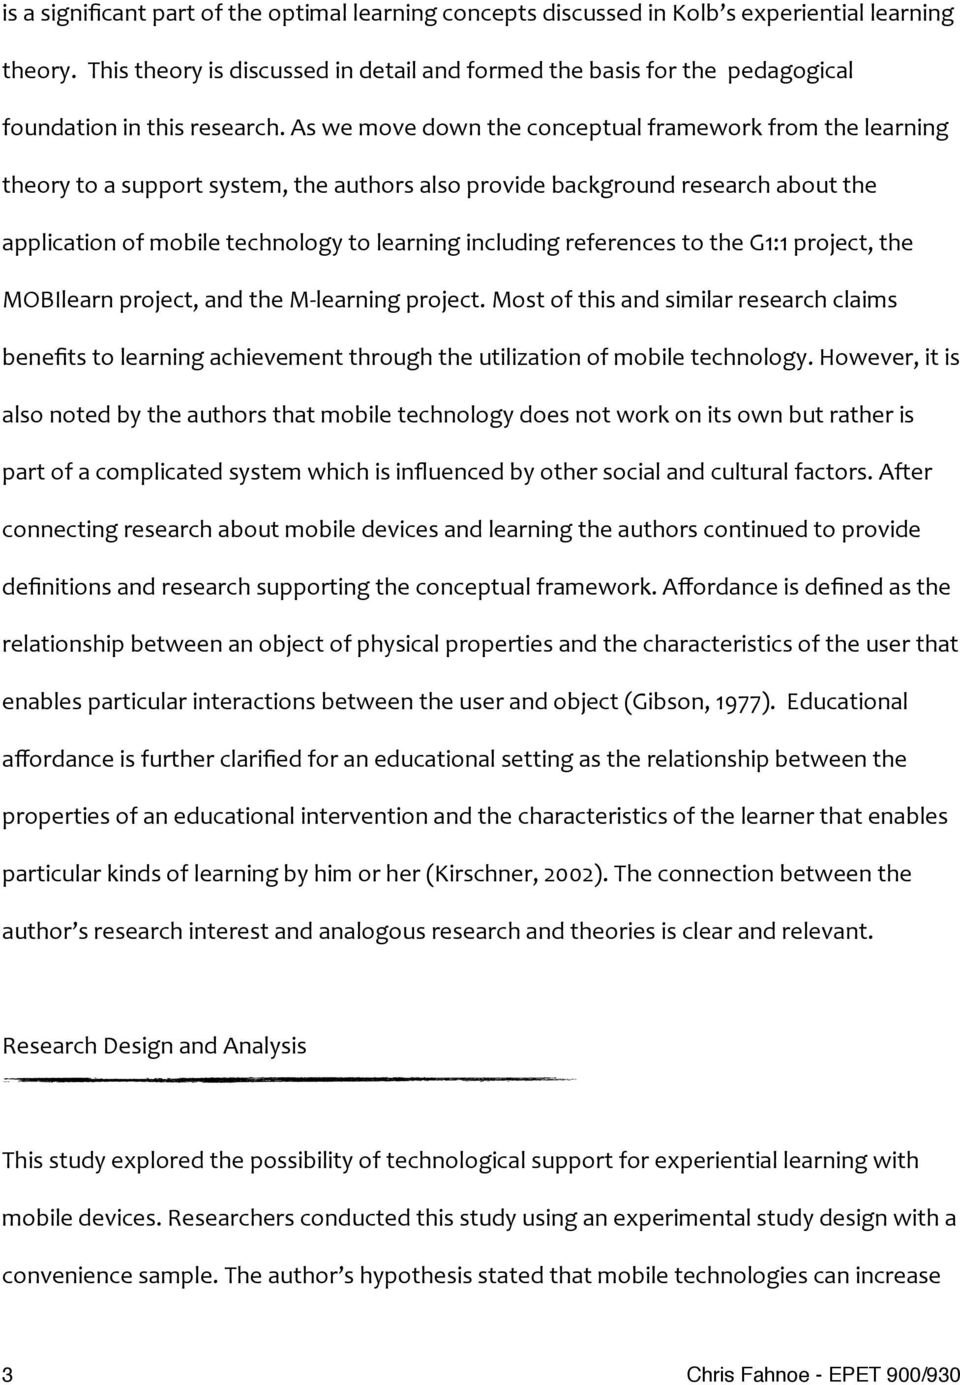 As we move down the conceptual framework from the learning theory to a support system, the authors also provide background research about the application of mobile technology to learning including